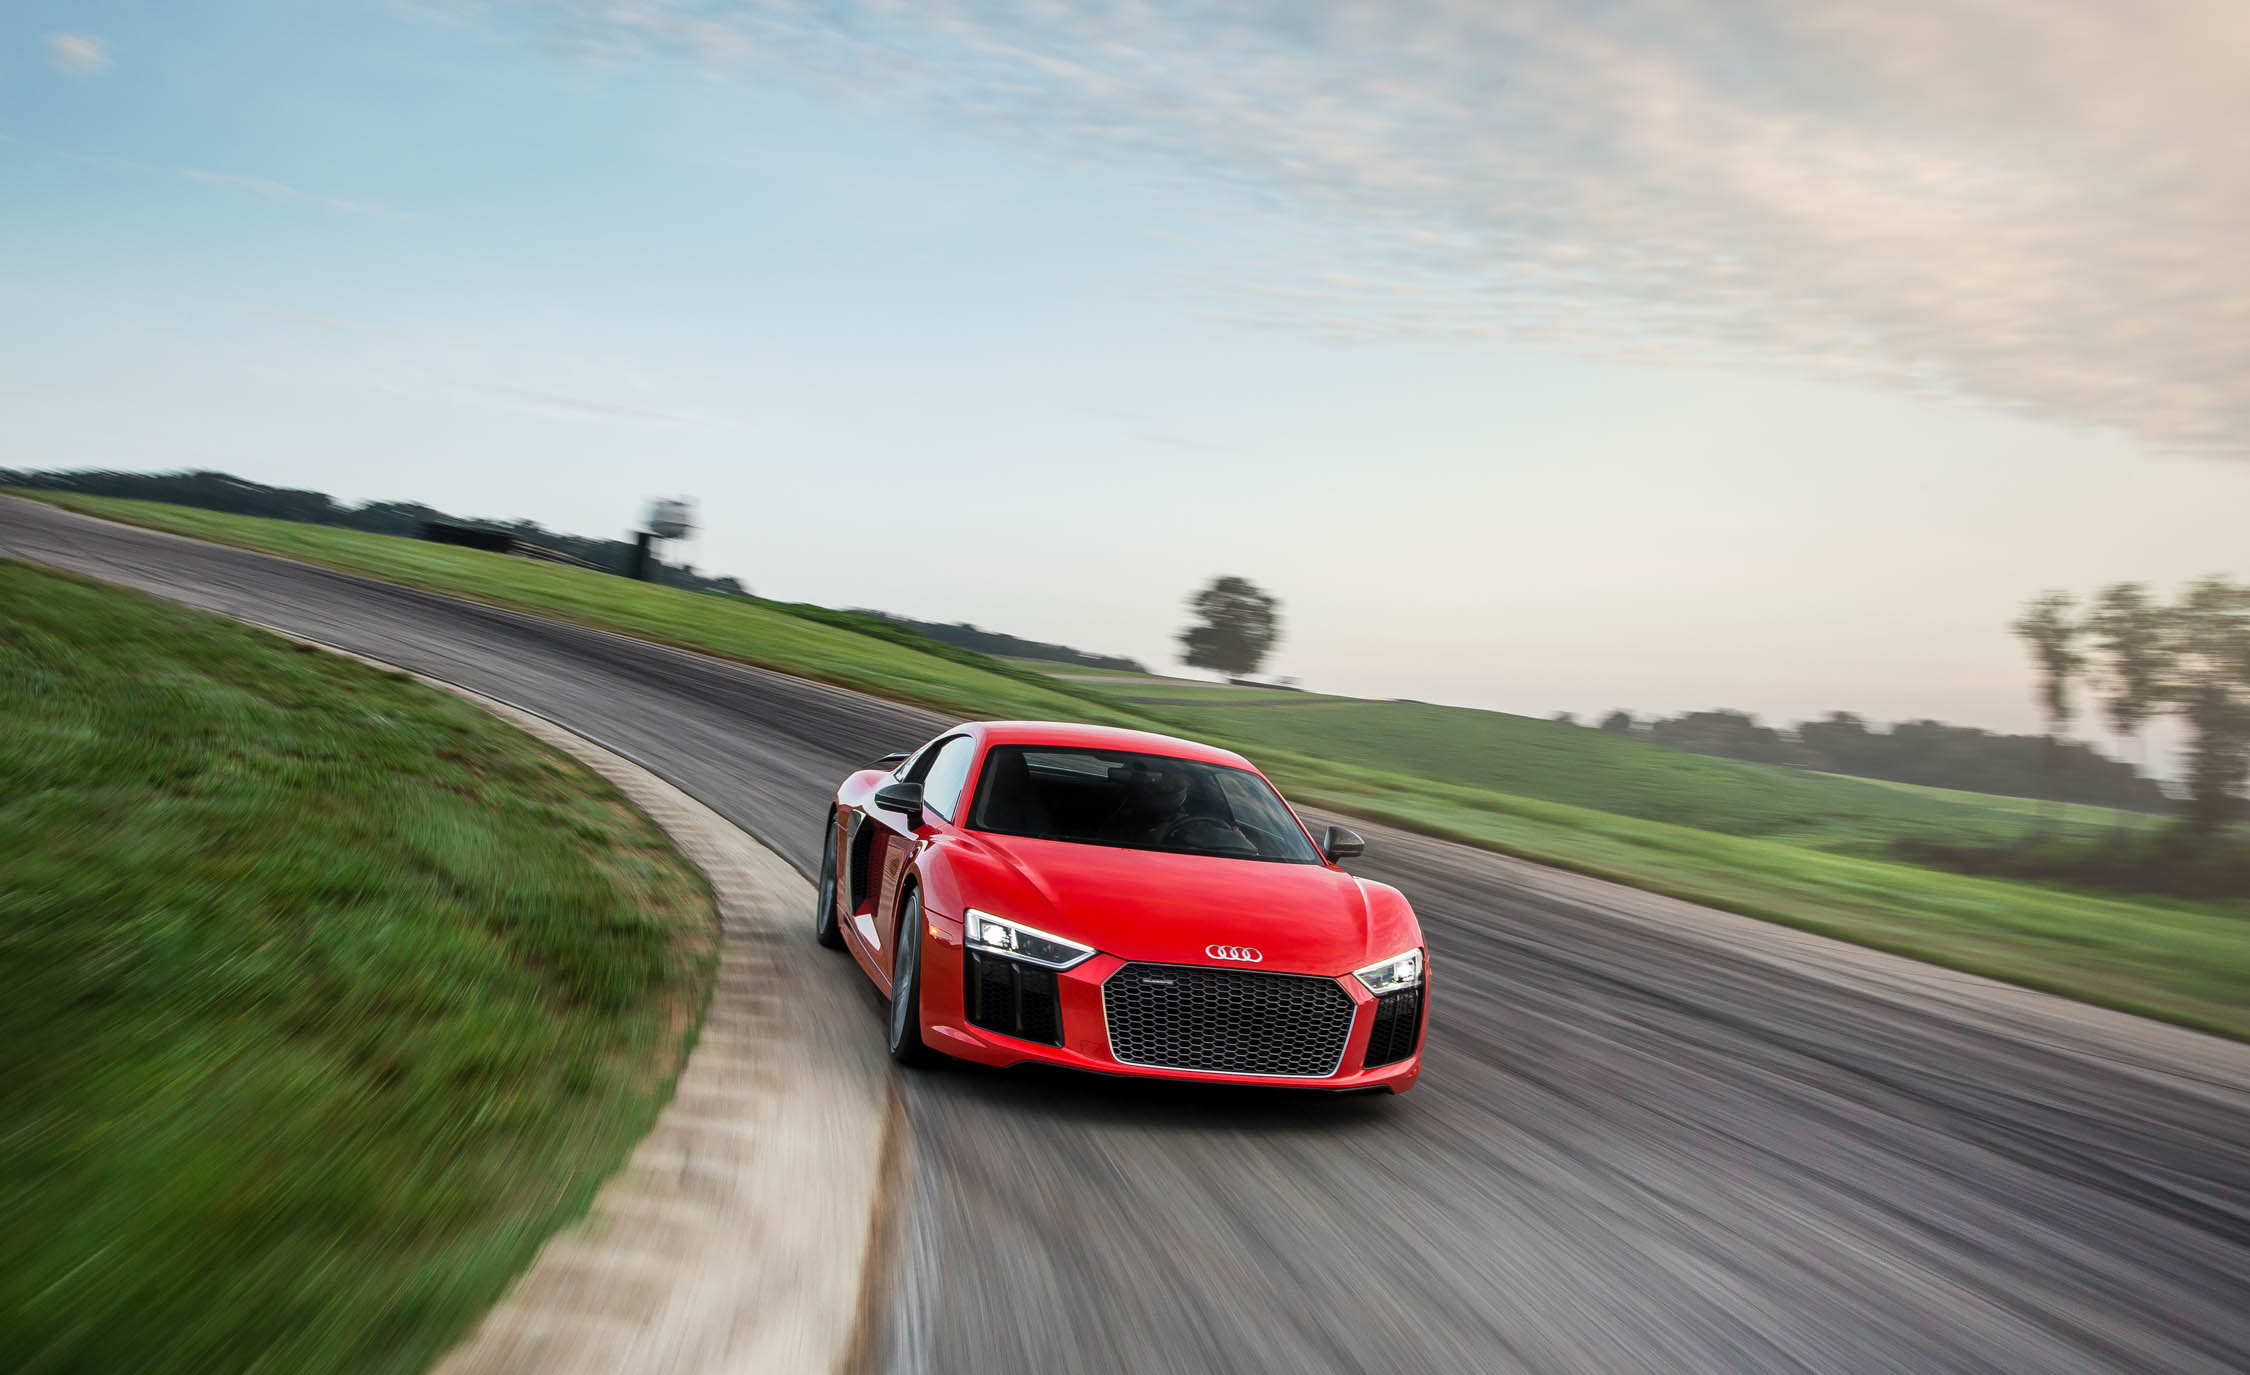 2017 Audi R8 V 10 Plus (Photo 15 of 19)